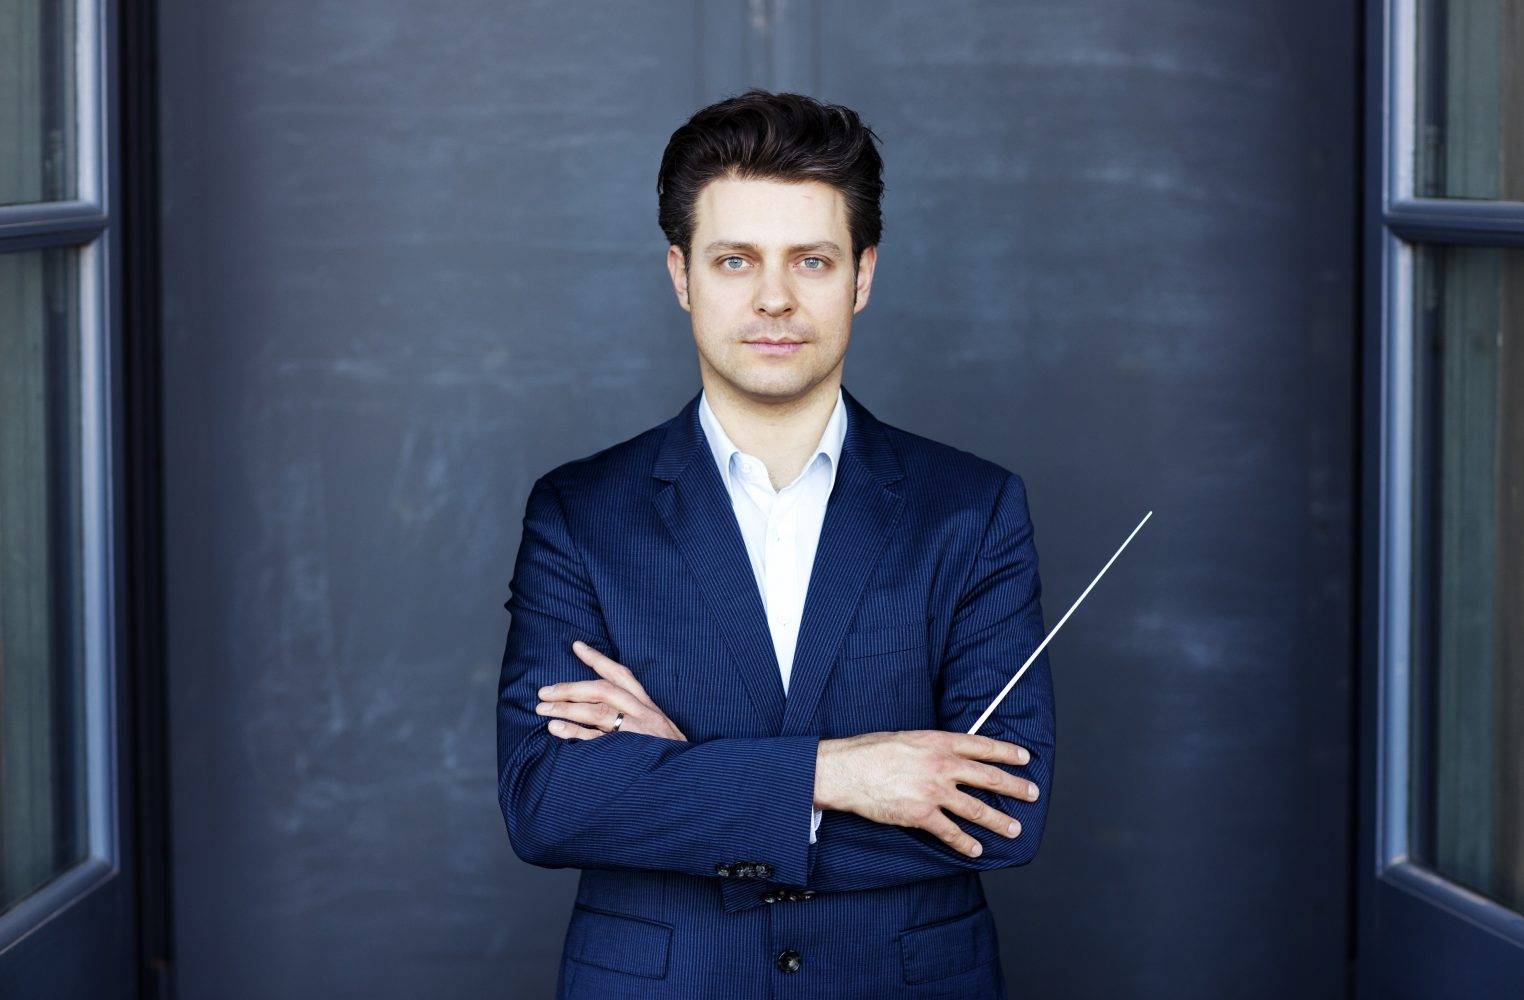 Joseph Bastian steps in to conduct the SWR Symphonieorchester 1